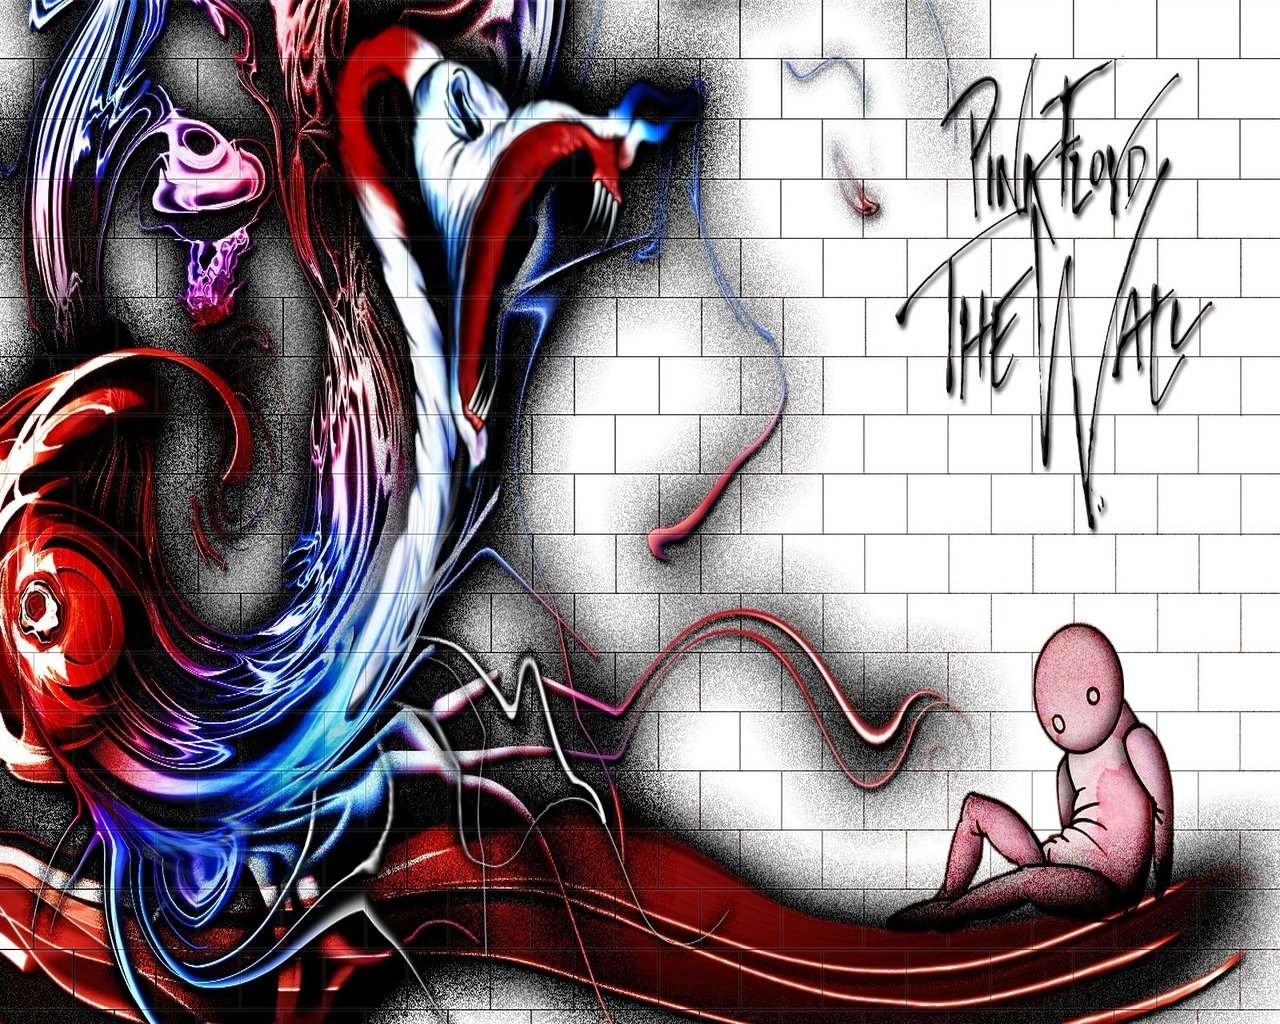 Pink Floyd Wallpaper   Music Wallpaper 20405366 1280x1024